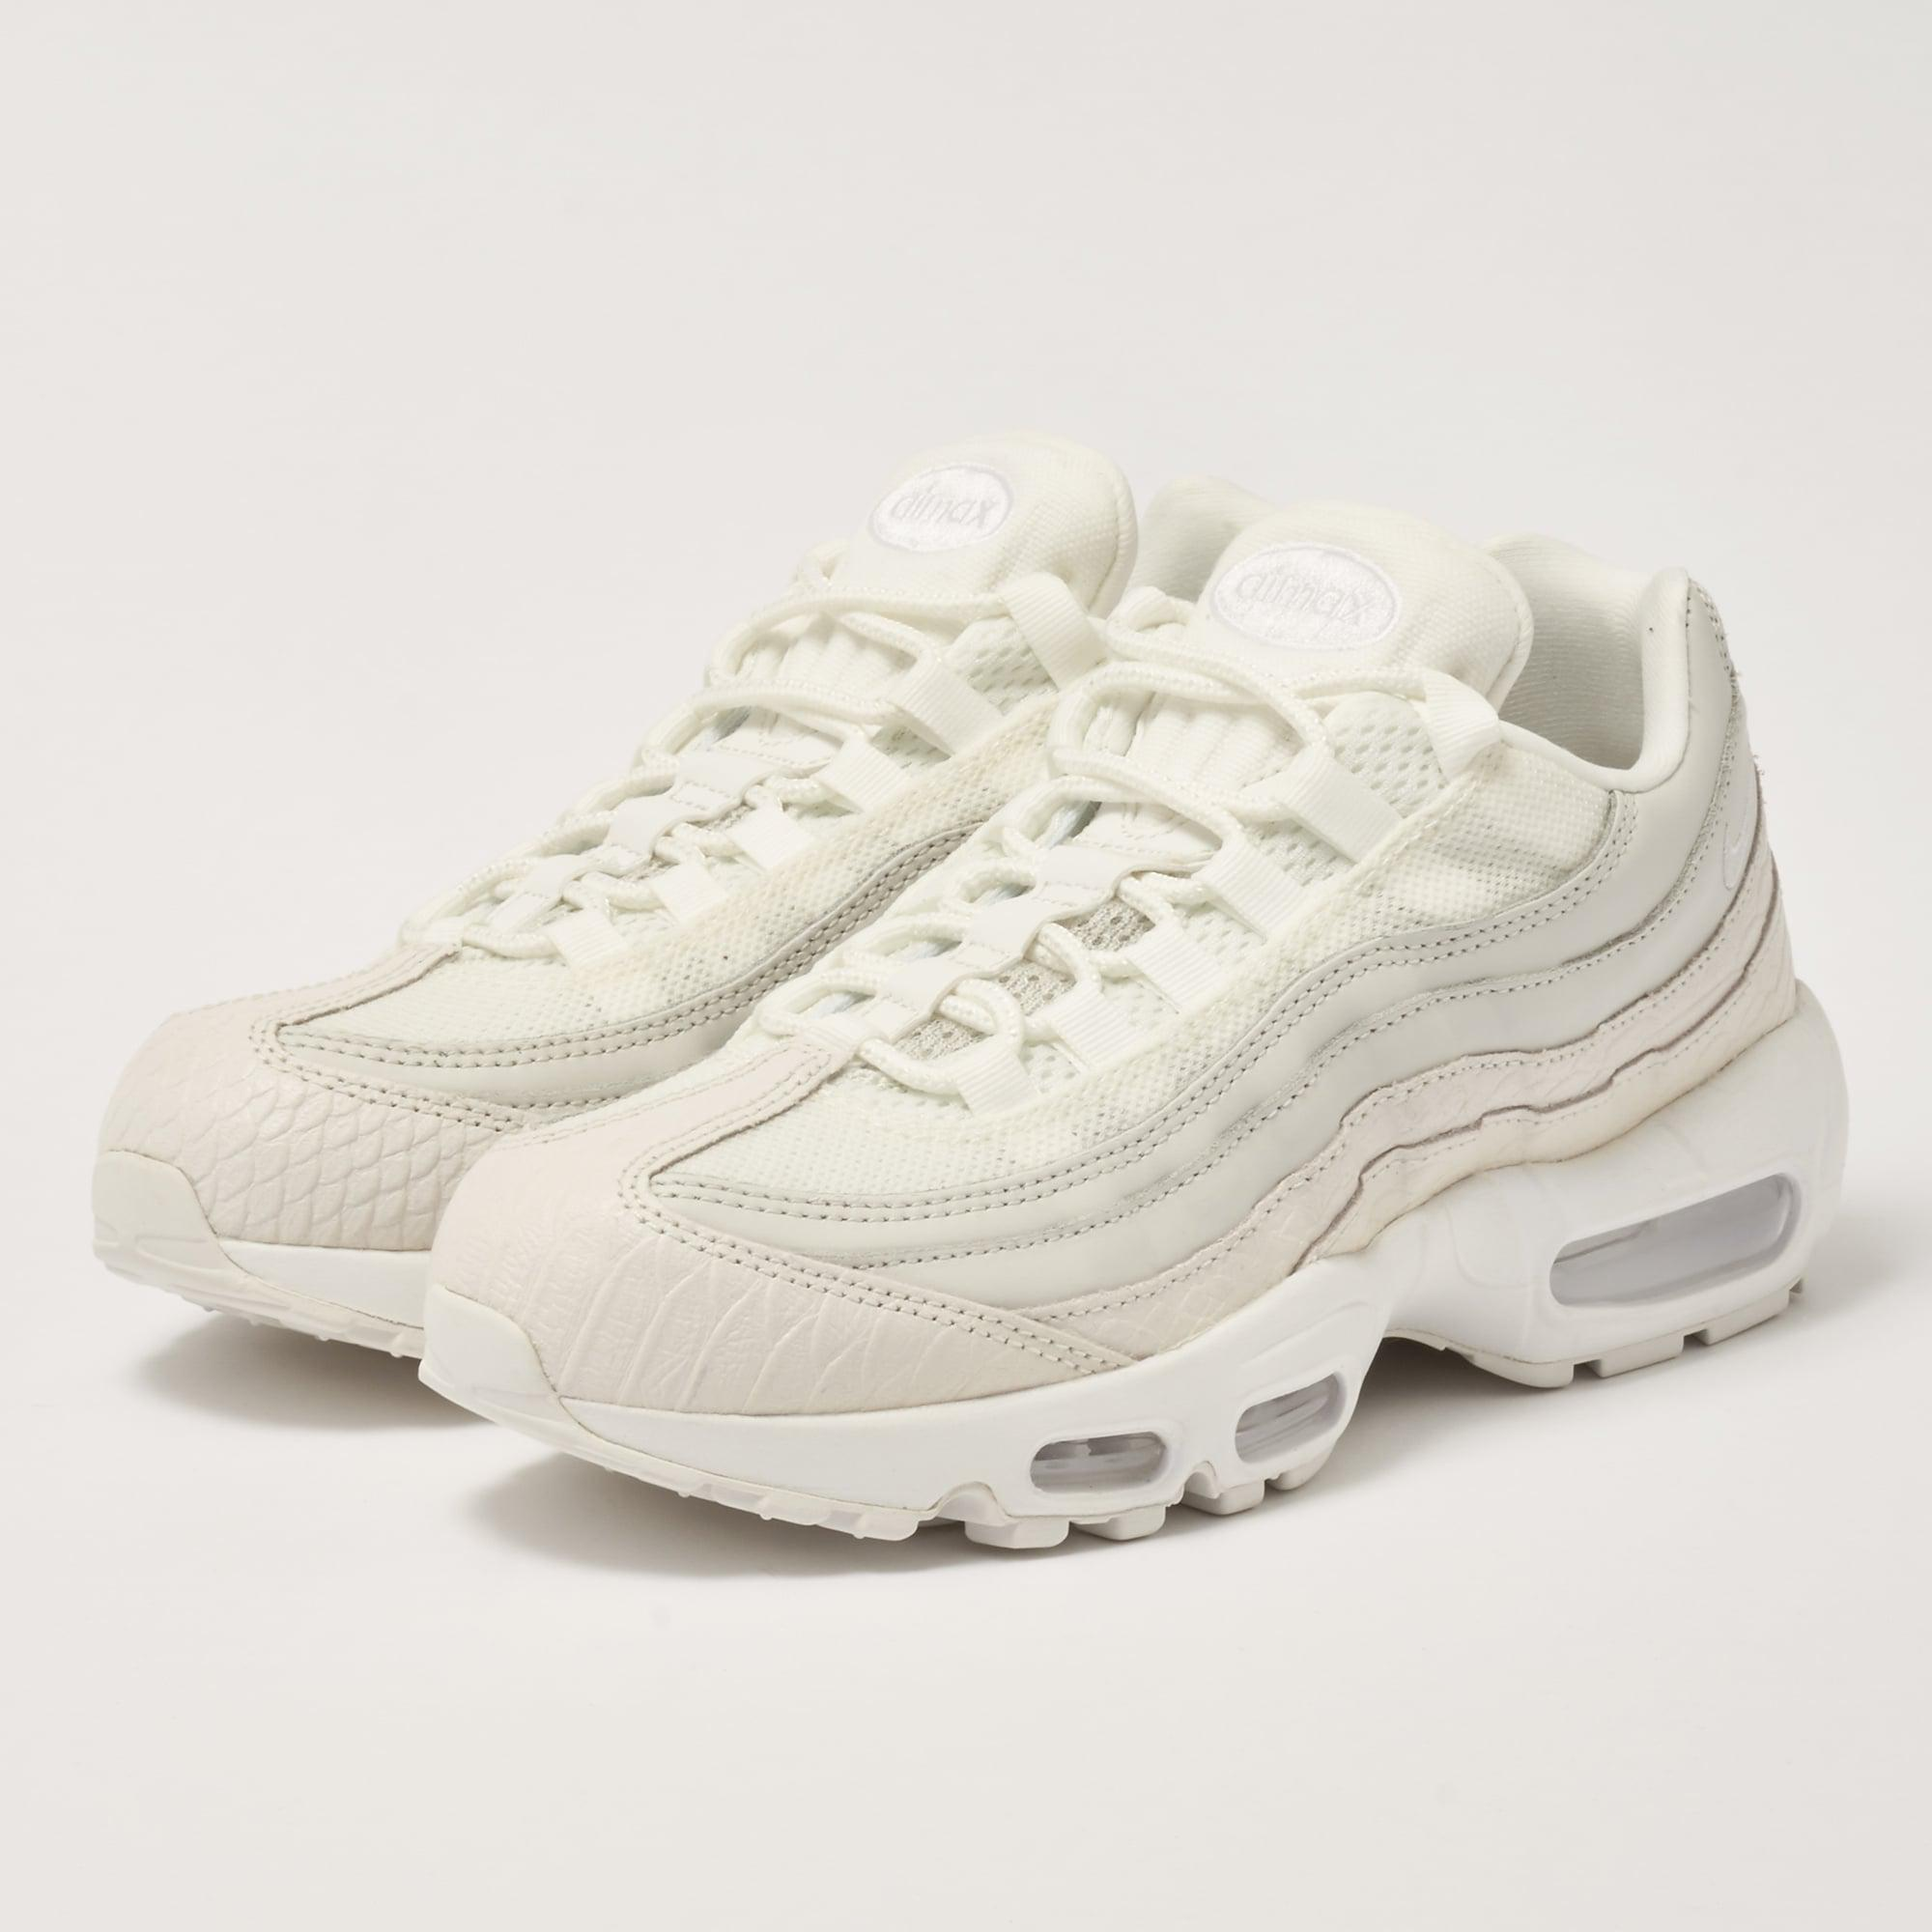 820eb10a78 Nike Air Max 95 Prm - Summit White in White for Men - Lyst